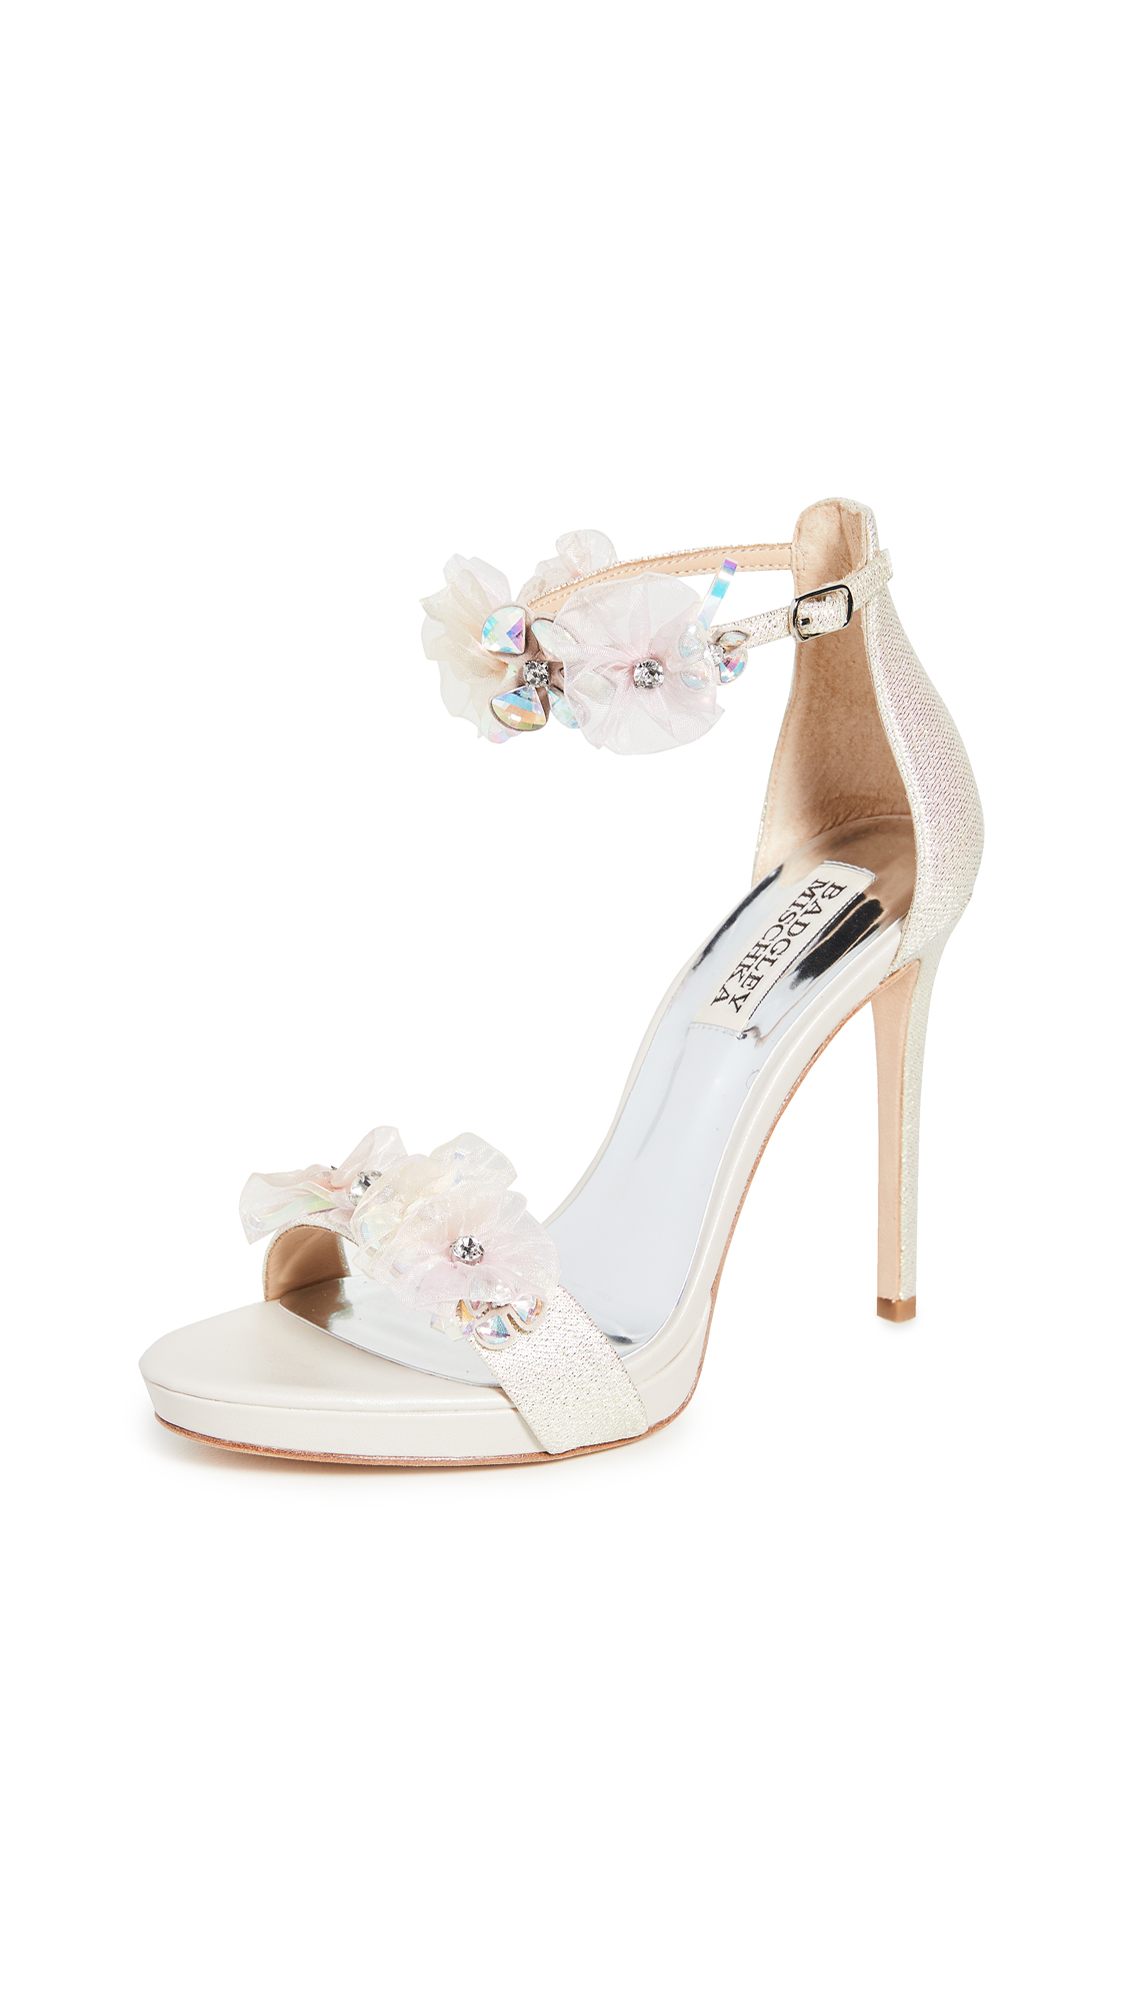 Badgley Mischka Cardi Sandals - 40% Off Sale